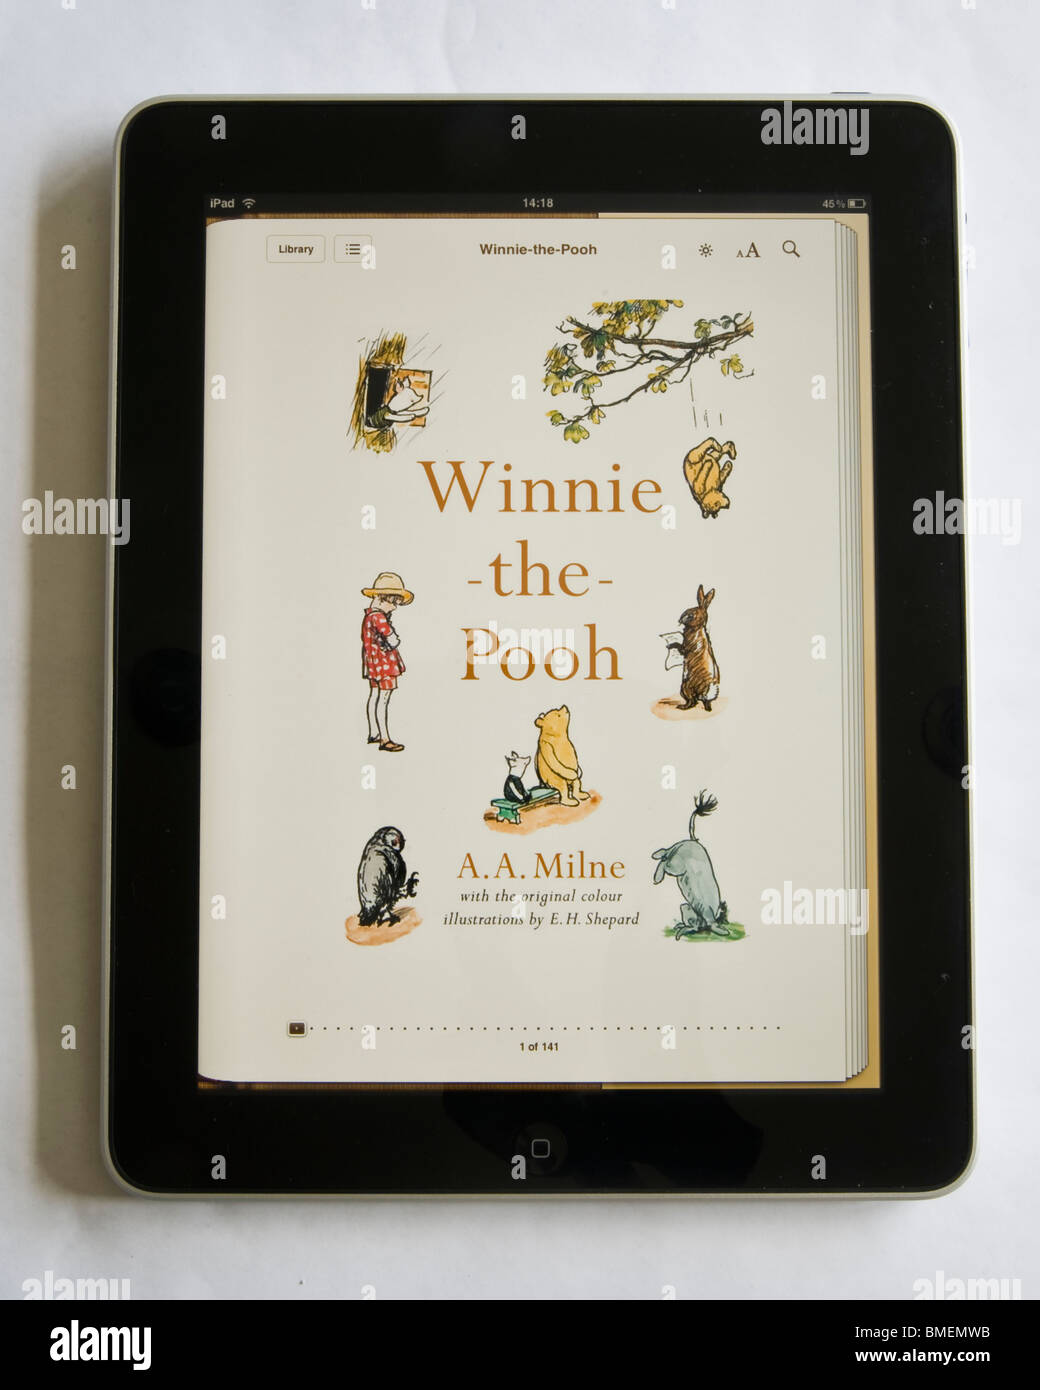 Winnie the pooh ebook on the apple ipad the ebook came free with winnie the pooh ebook on the apple ipad the ebook came free with ipad the ipad will be very popular for reading books voltagebd Gallery